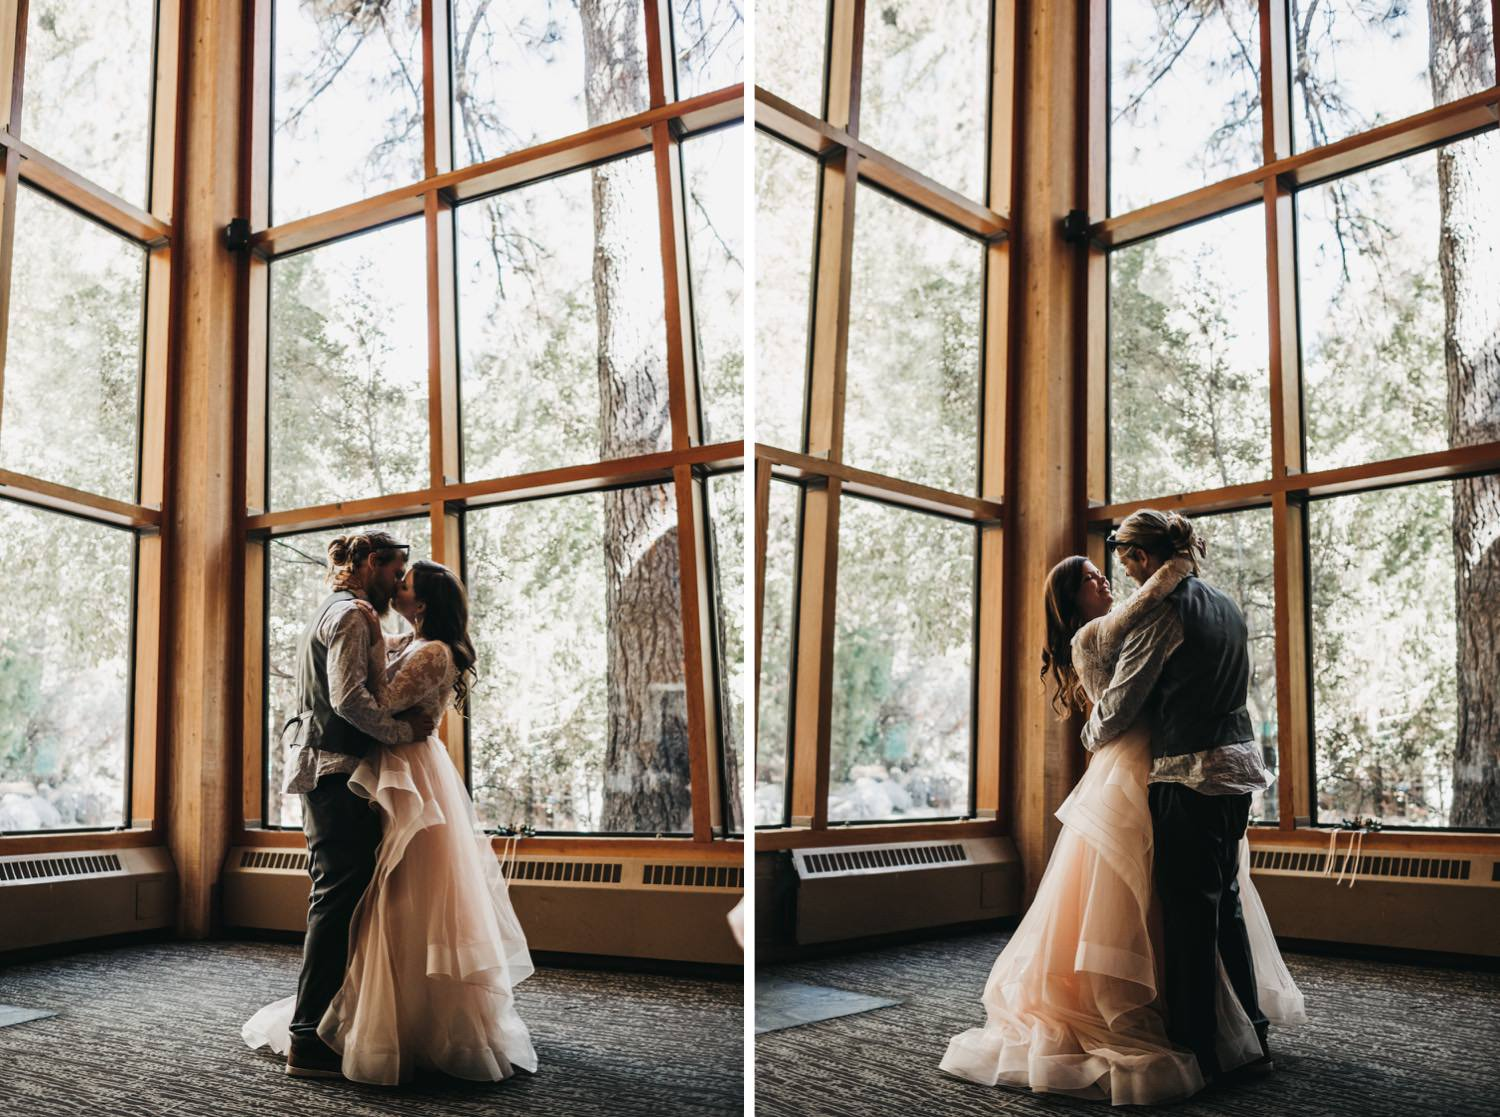 56_alex+matt-wedding-382_alex+matt-wedding-381_park_national_elopement_wedding_yosemite_intimate.jpg